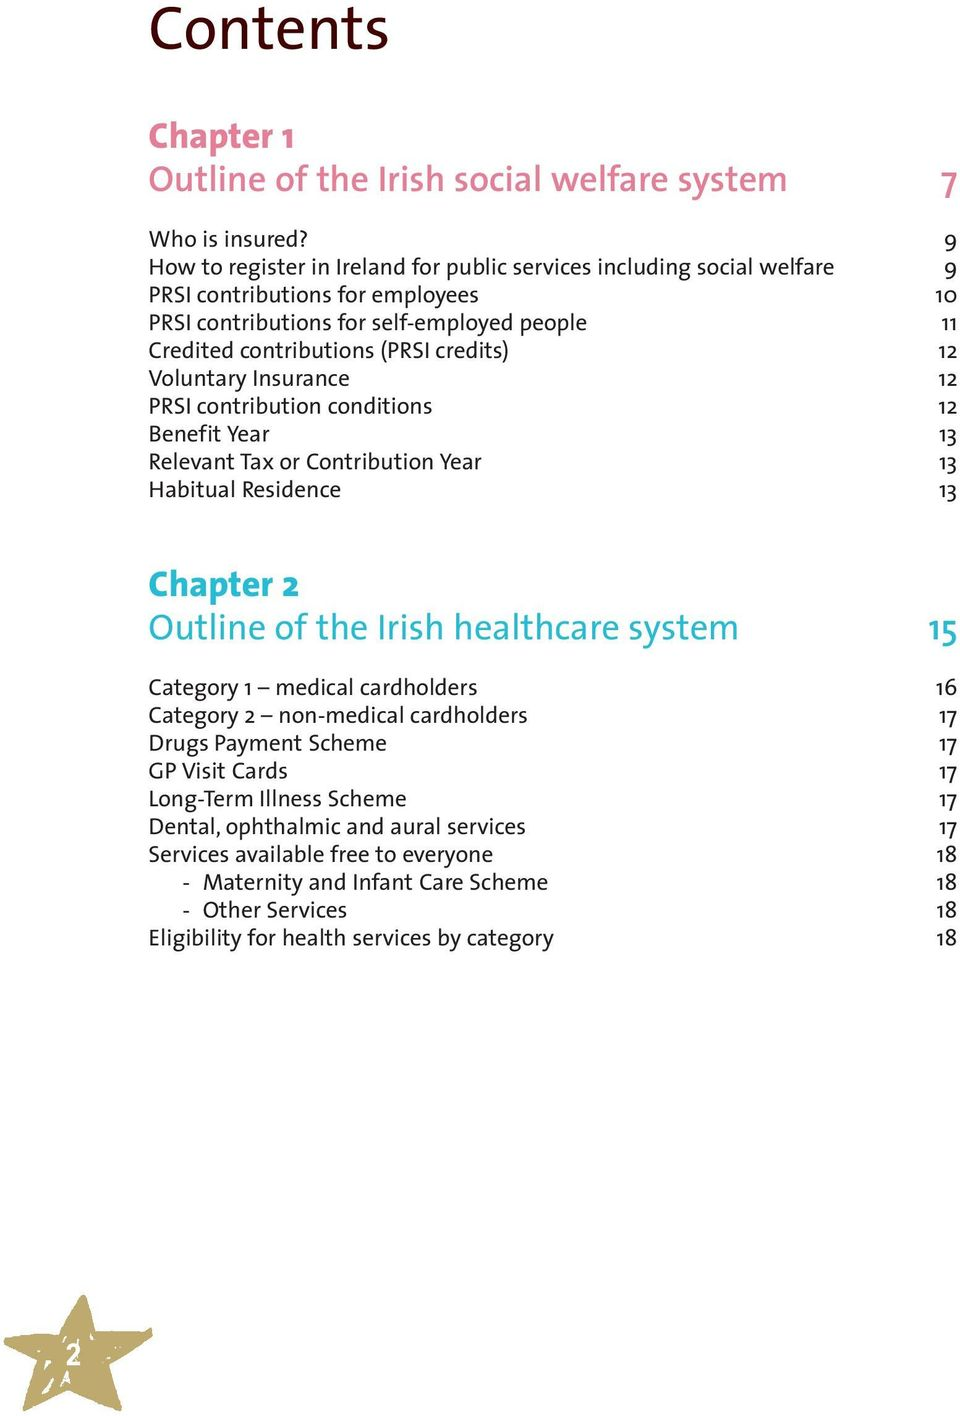 12 Voluntary Insurance 12 PRSI contribution conditions 12 Benefit Year 13 Relevant Tax or Contribution Year 13 Habitual Residence 13 Chapter 2 Outline of the Irish healthcare system 15 Category 1